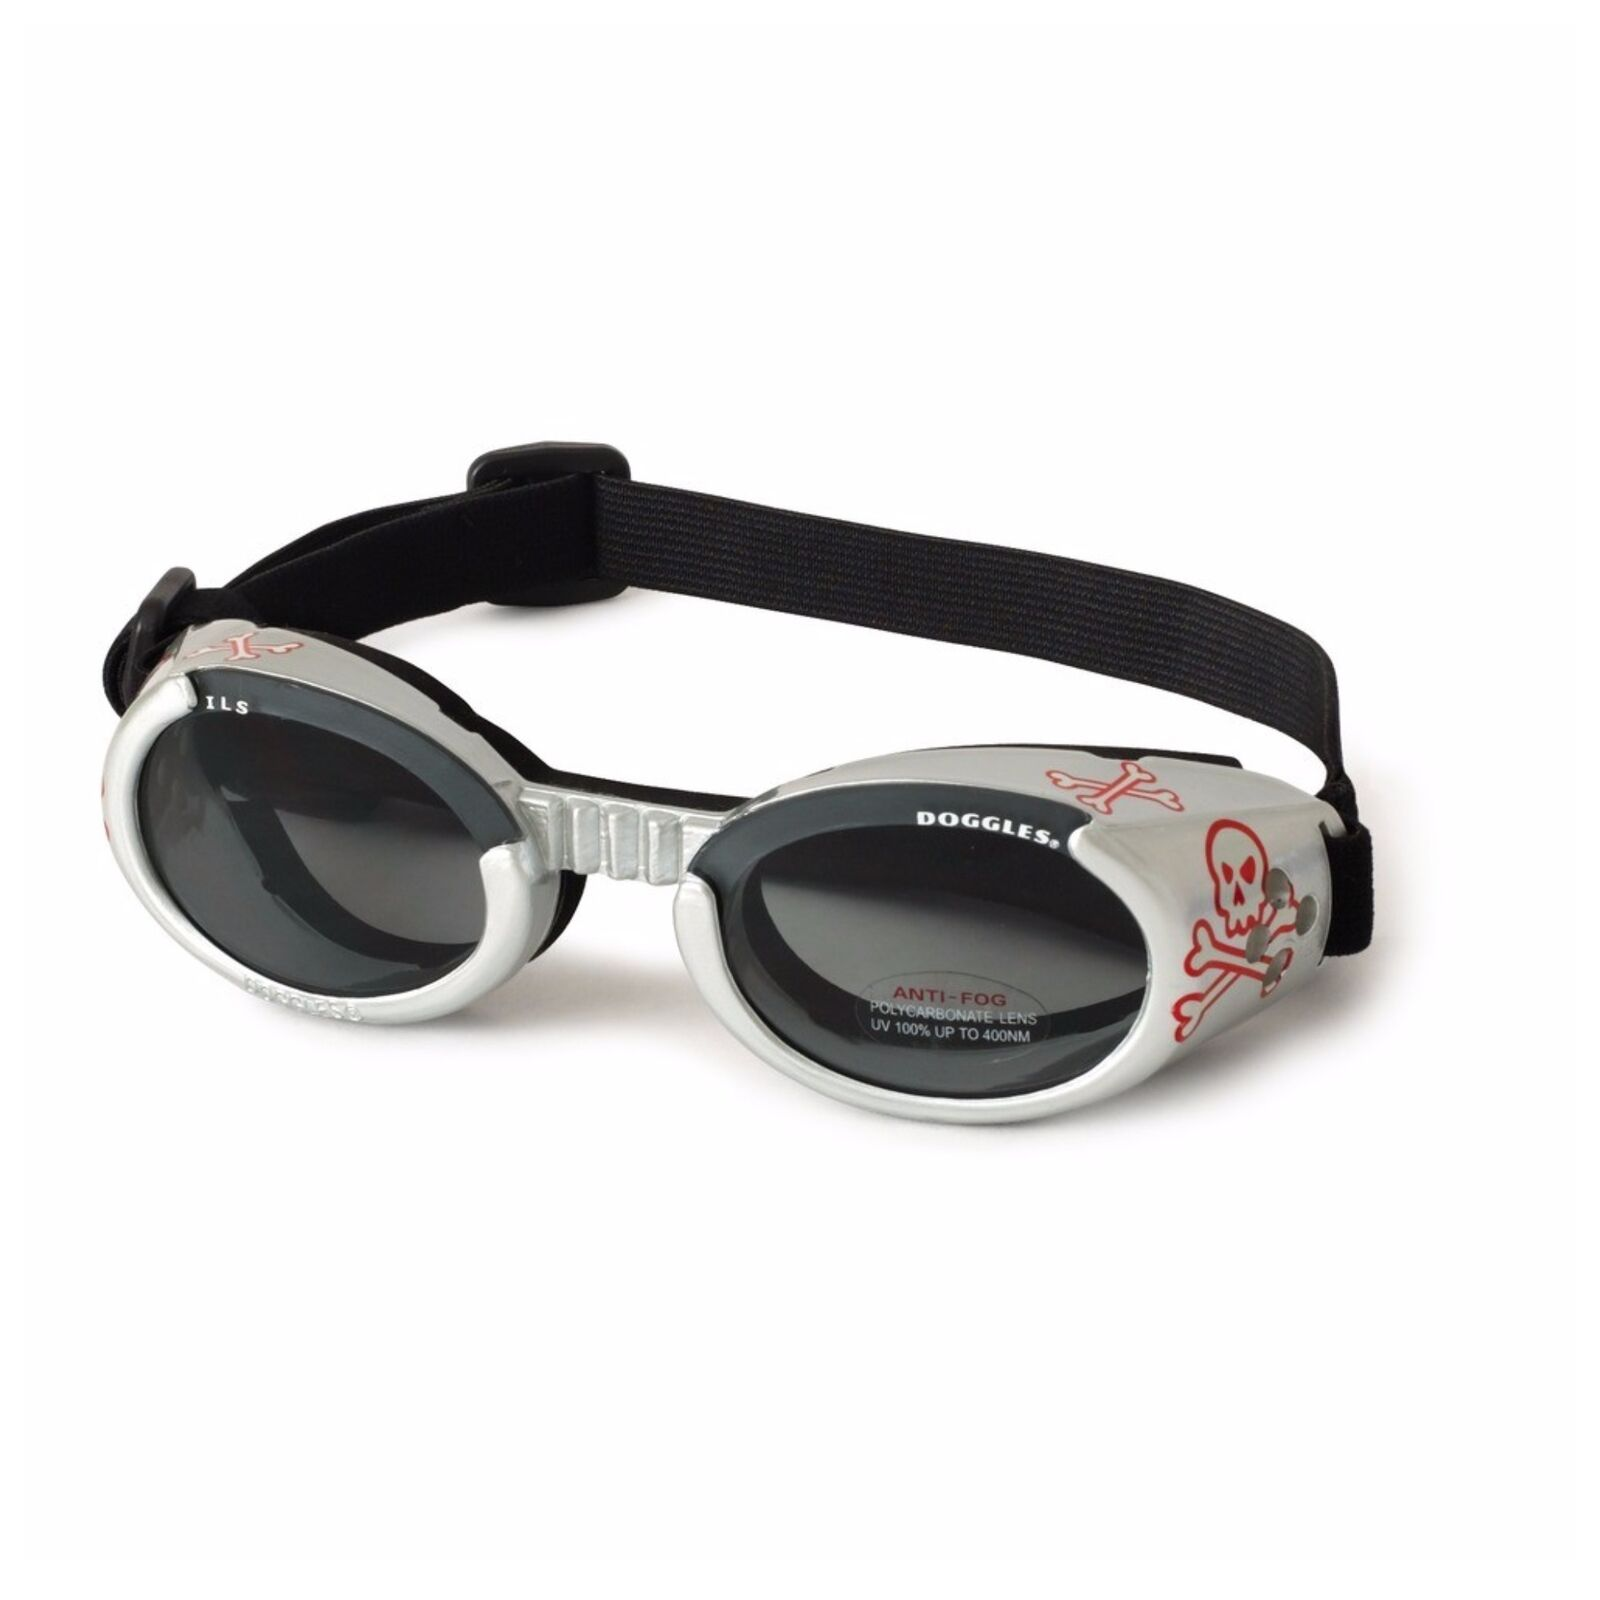 Doggles ILS SkullSmoke Small  GogglesSunglasses  Eye Protection for Dogs